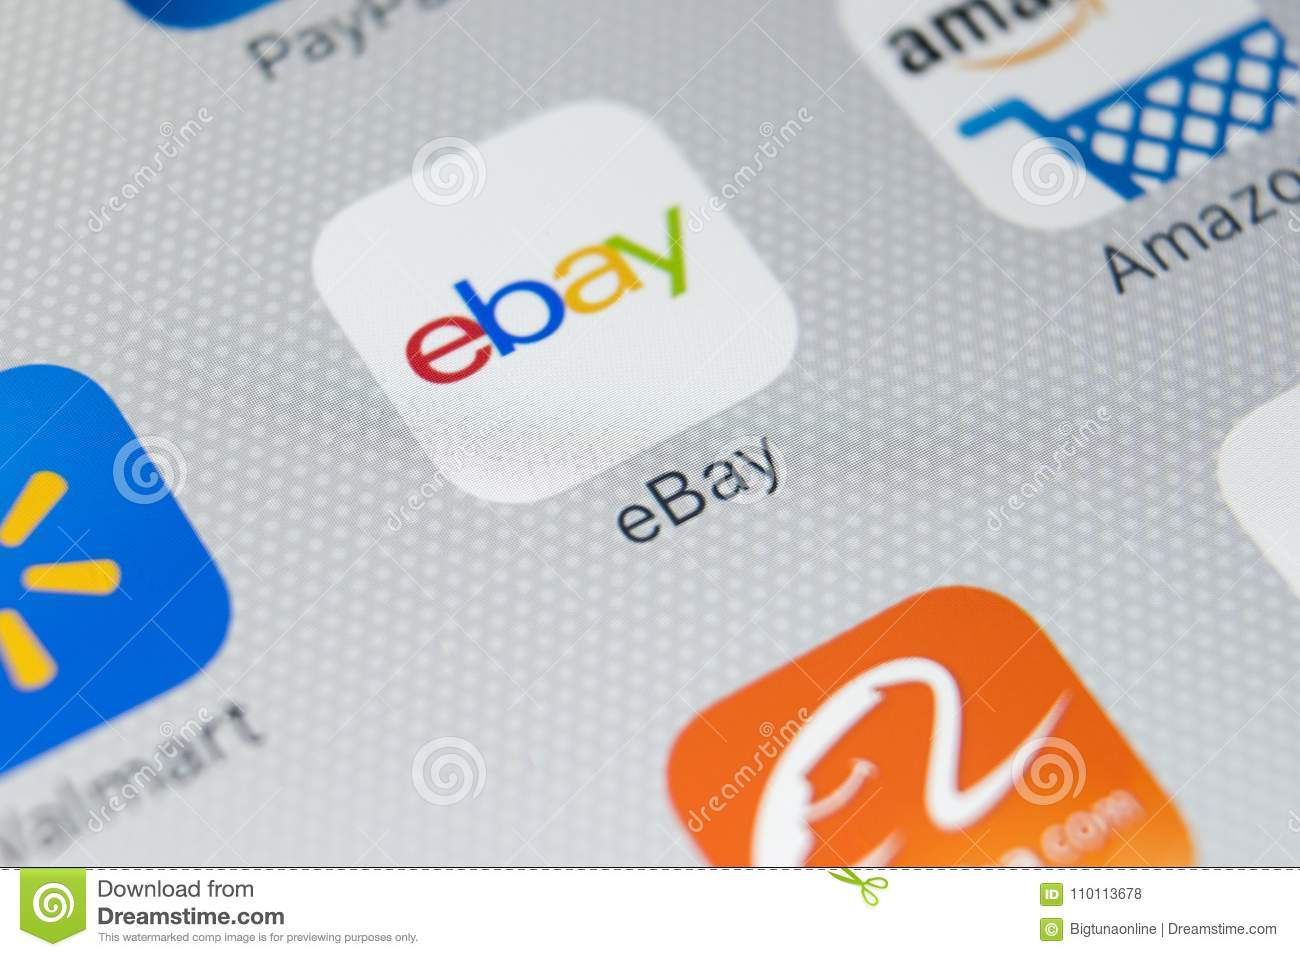 Ebay Application Icon On Apple Iphone X Screen Close Up Ebay App Icon Ebay Com Is Largest Online Auction And Shopping Websites Editorial Stock Photo Image Of Network Ebay 110113678